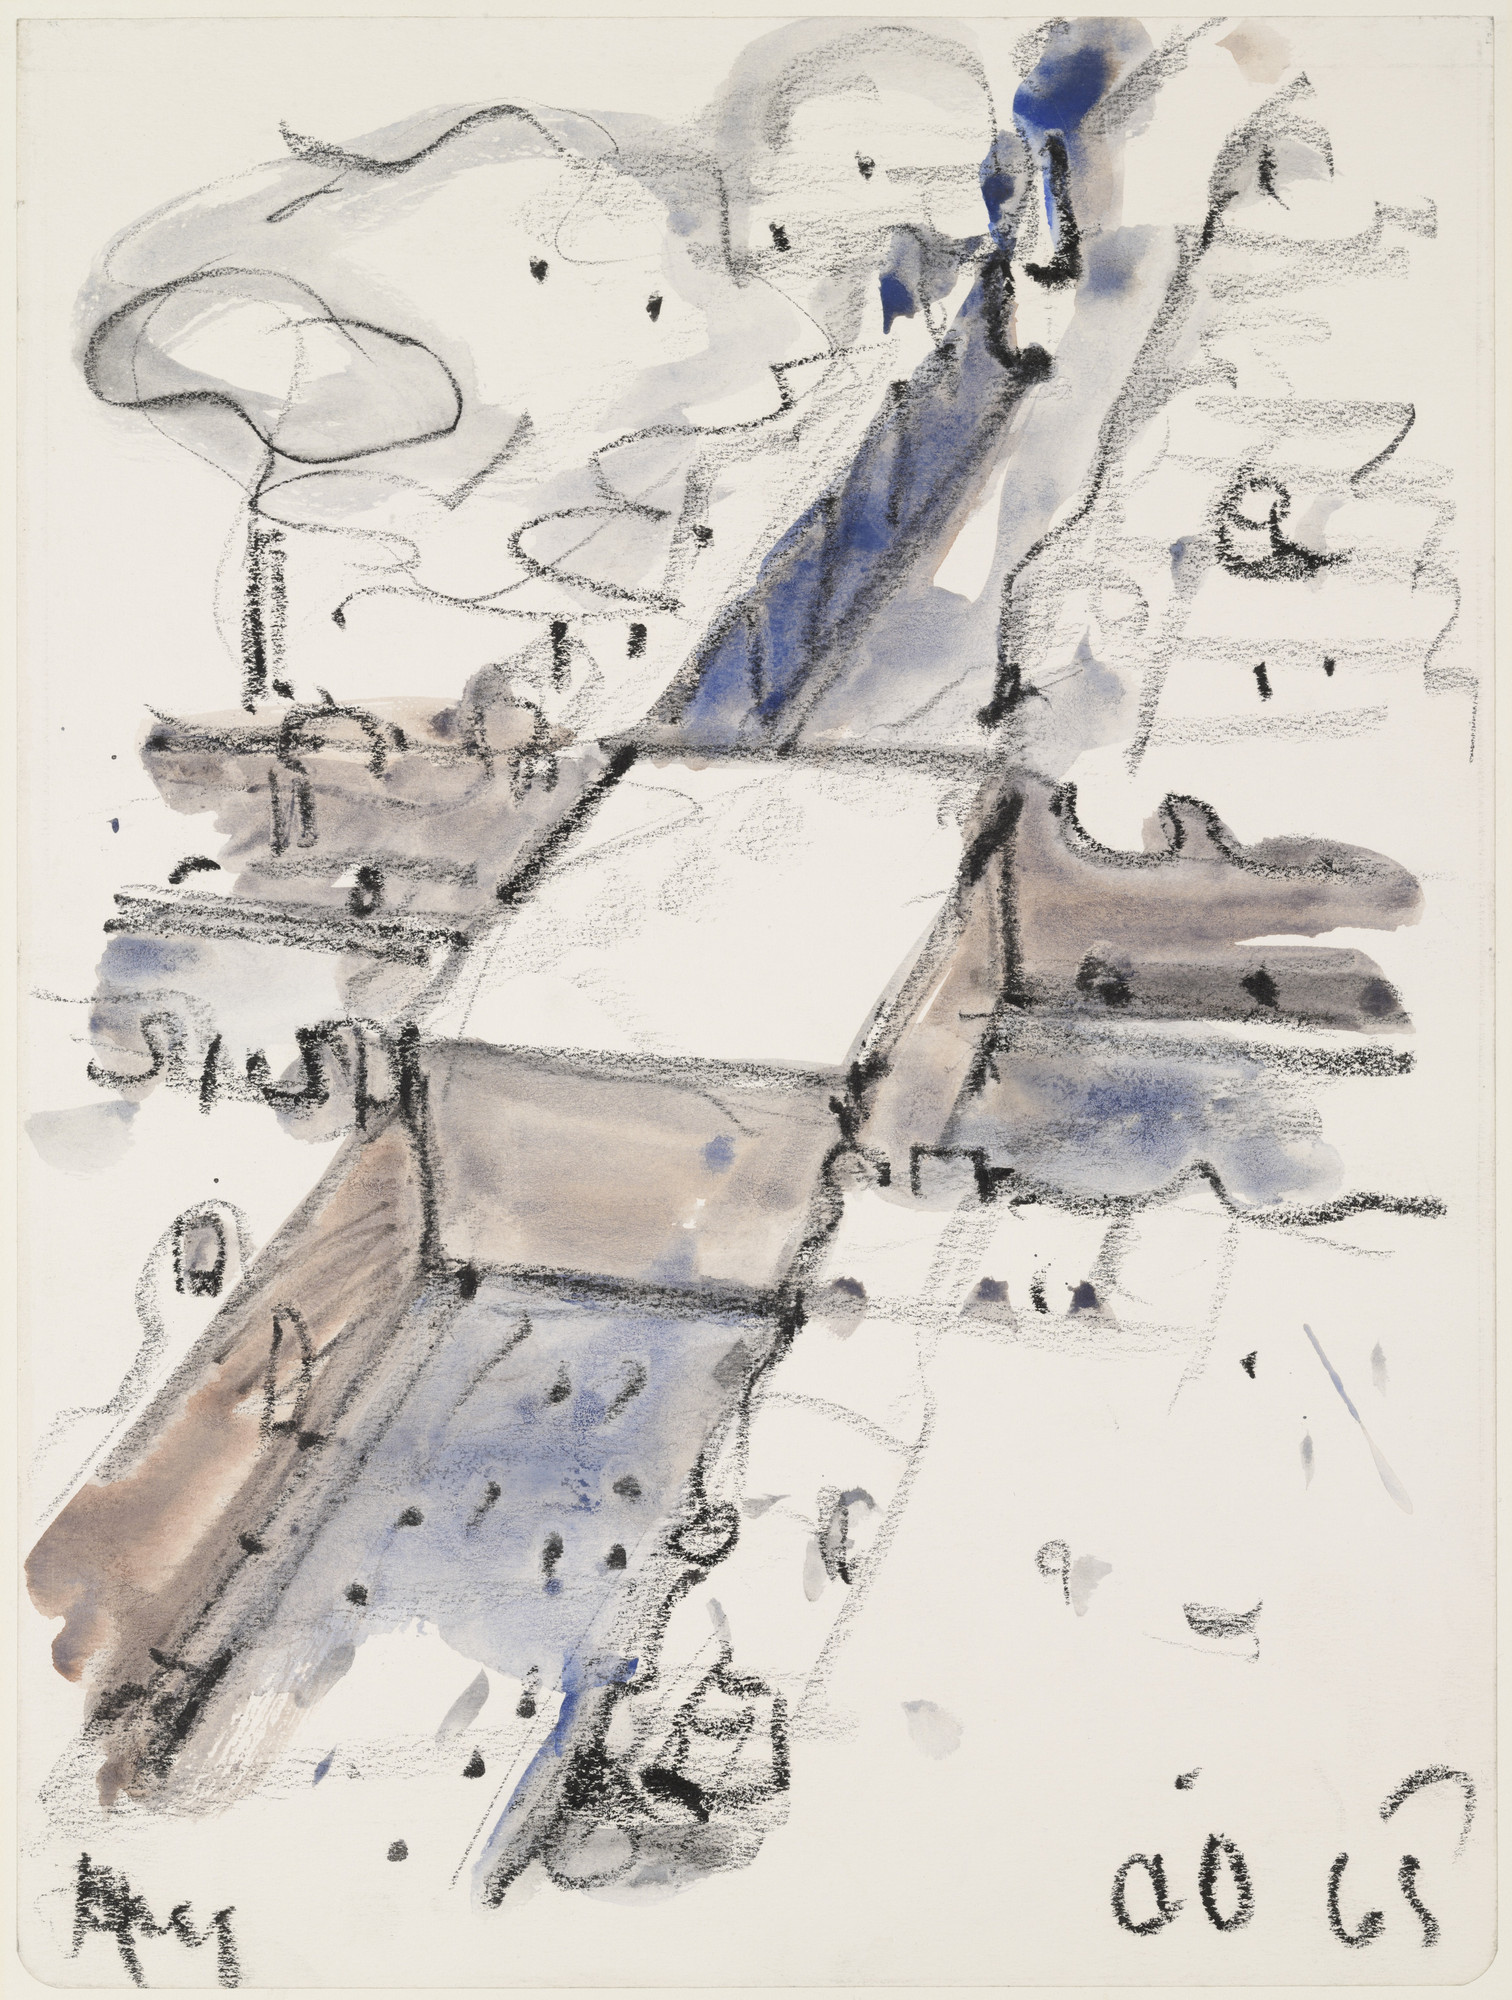 Claes Oldenburg. Proposed Monument for the Intersection of Canal Street and Broadway, N.Y.C. -- Block of Concrete with the Names of War Heroes. 1965